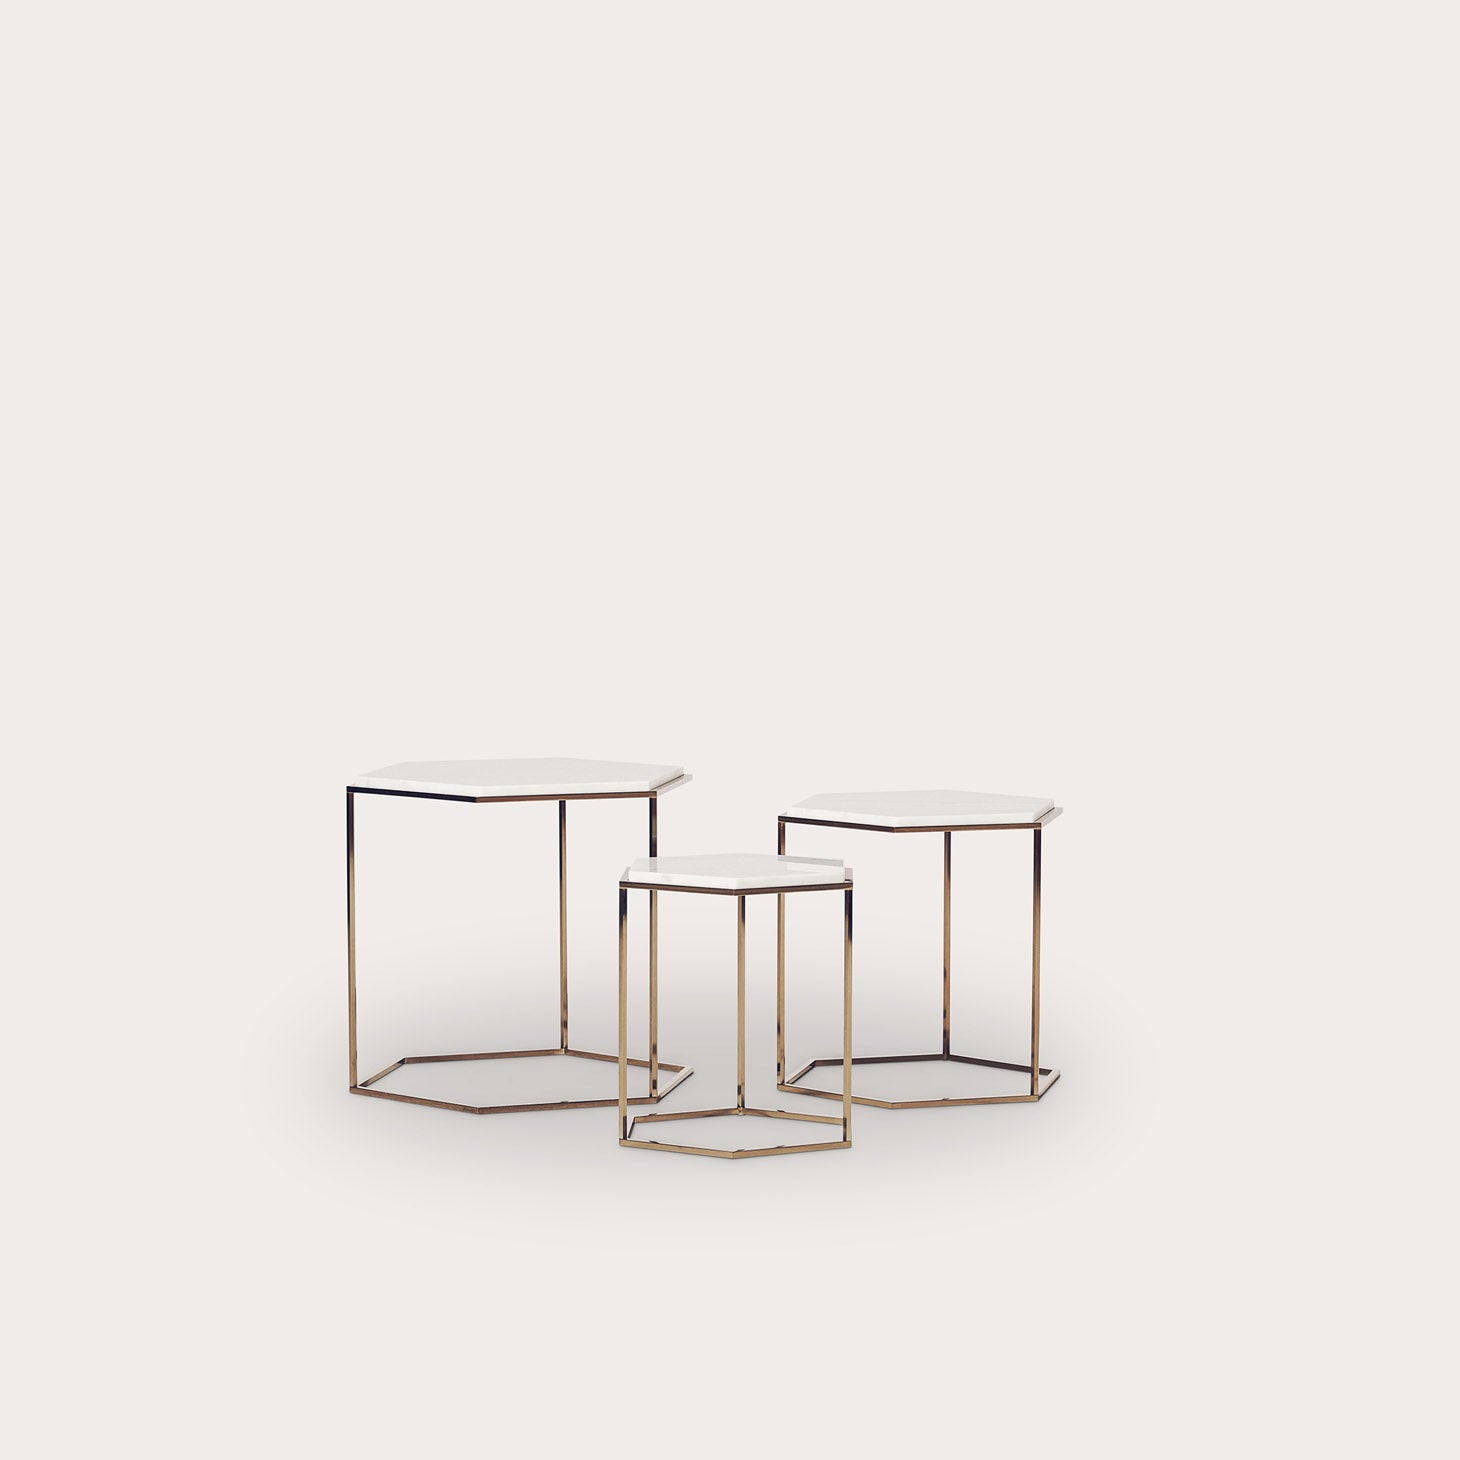 Nob Hill Tables Yabu Pushelberg Designer Furniture Sku: 782-230-10017